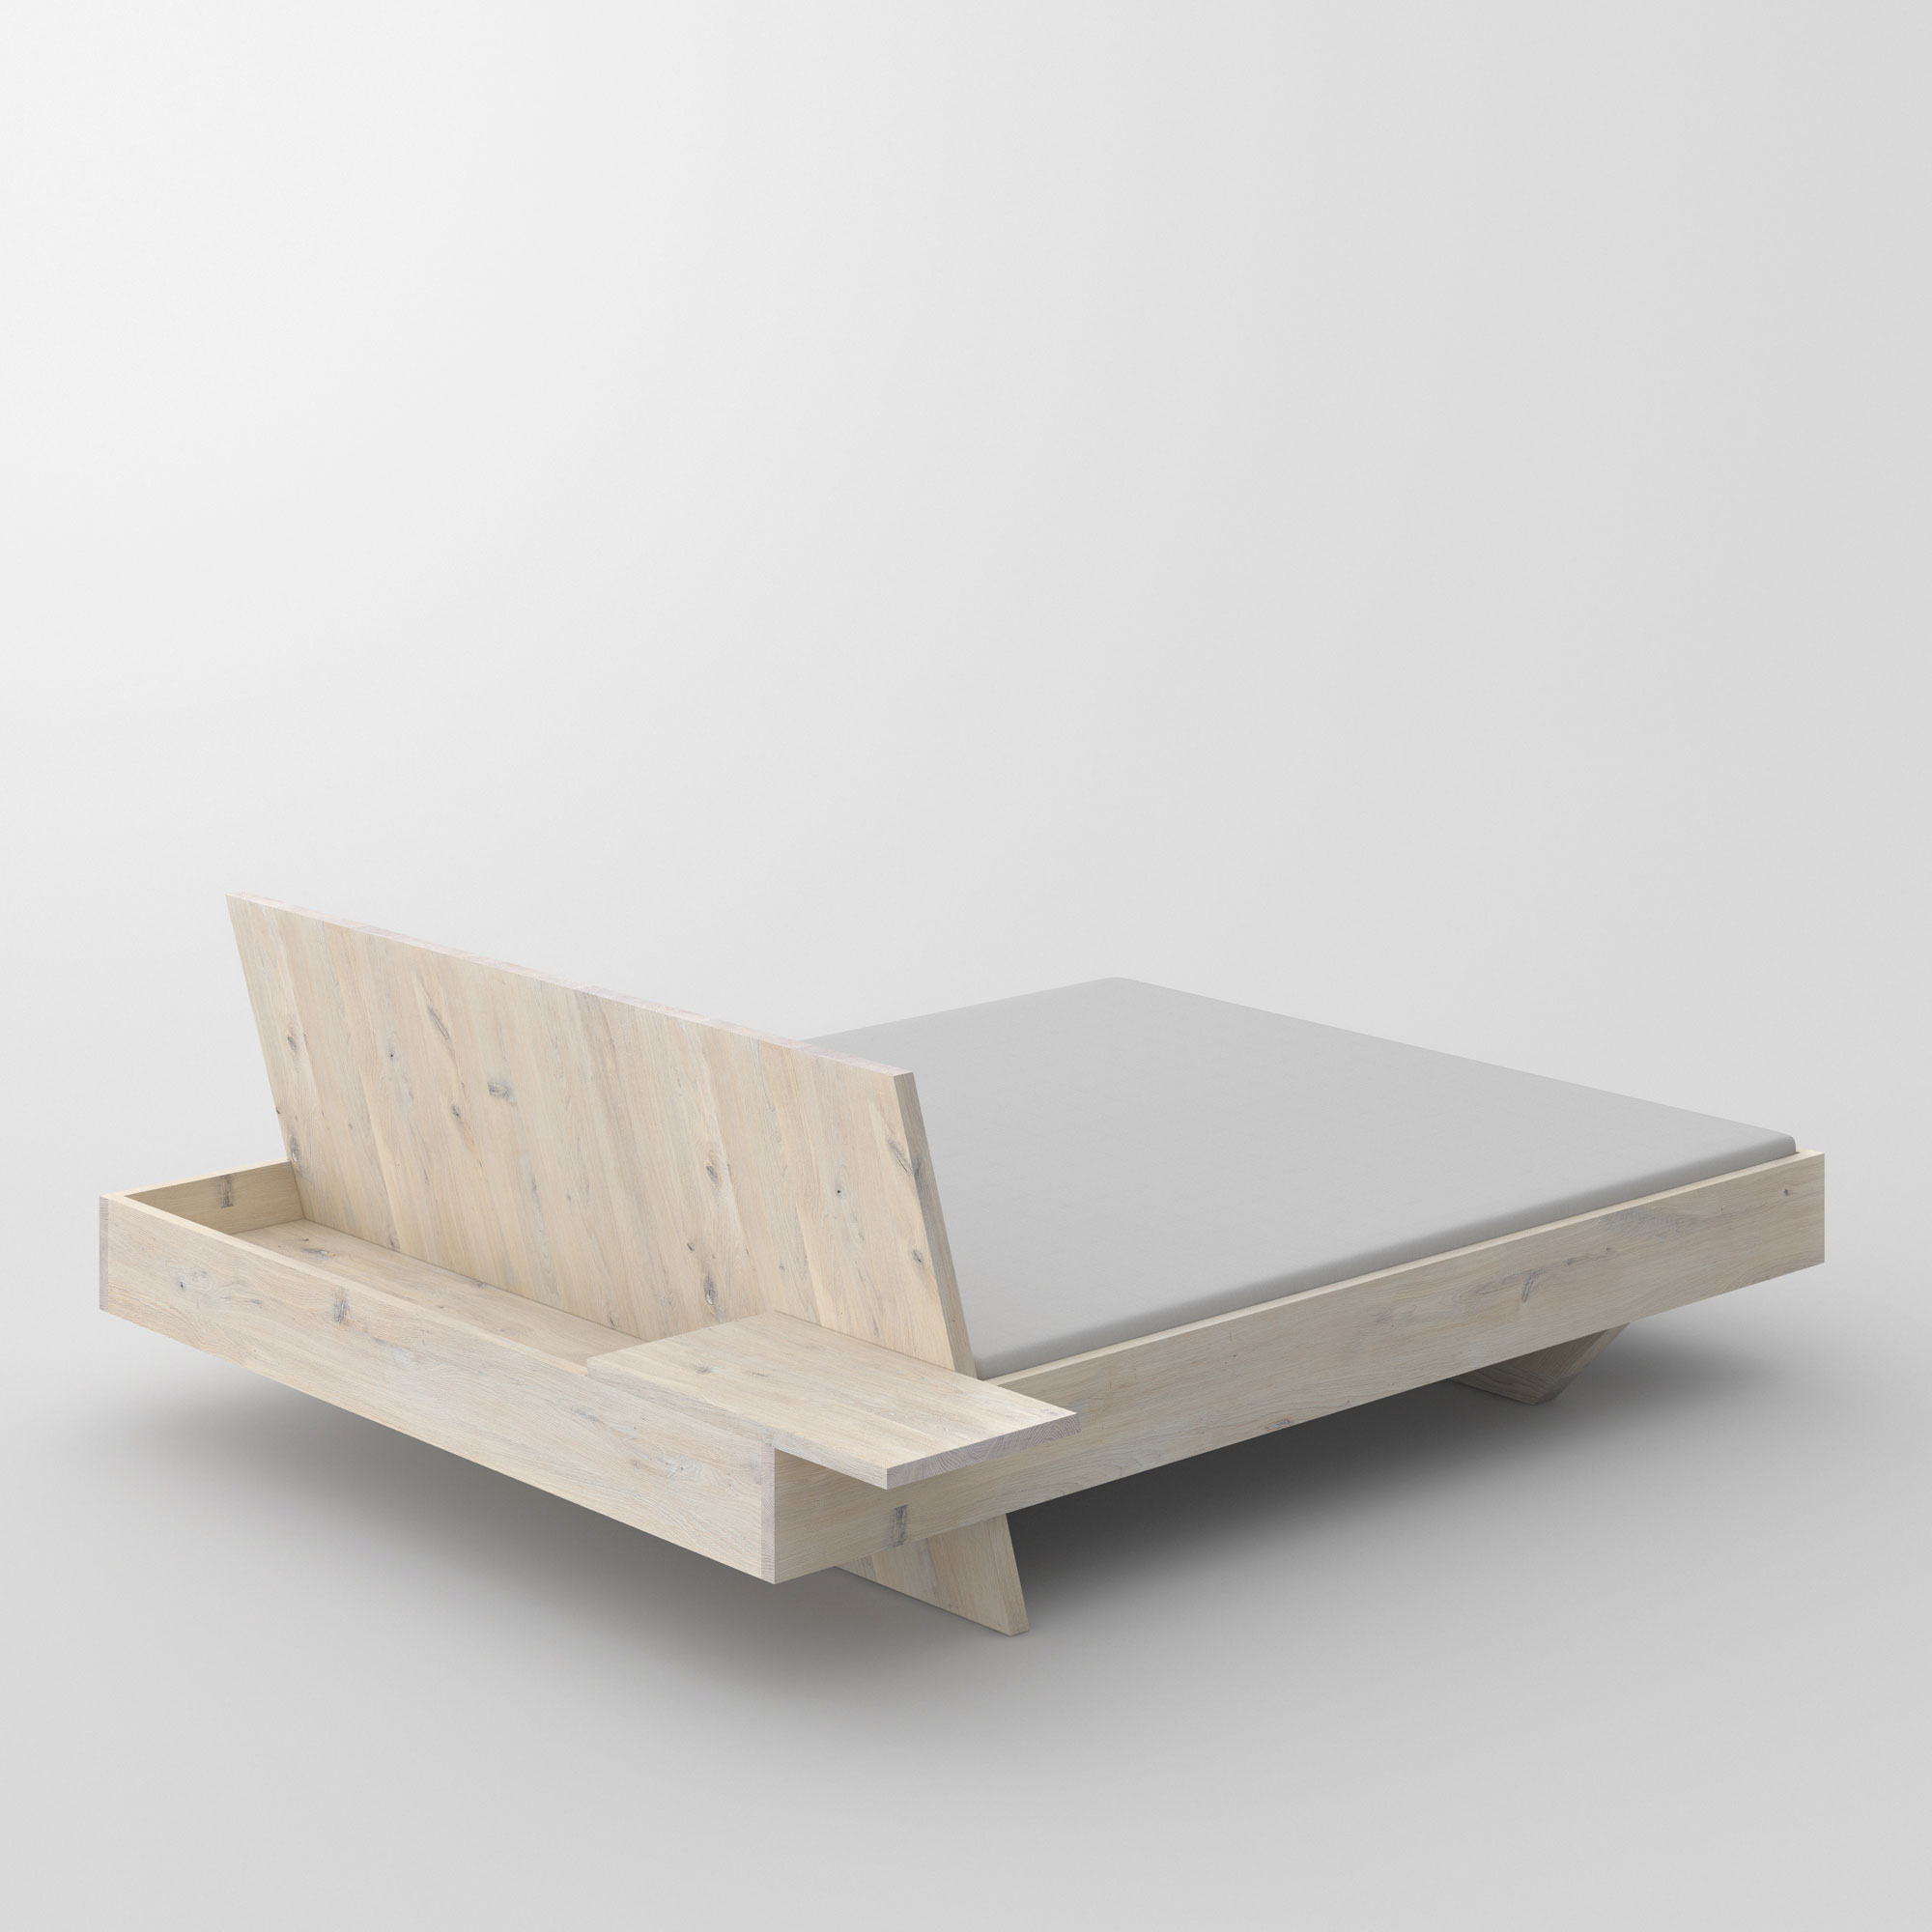 Design Solid Wood Bed SOMNIA cam3 custom made in solid wood by vitamin design